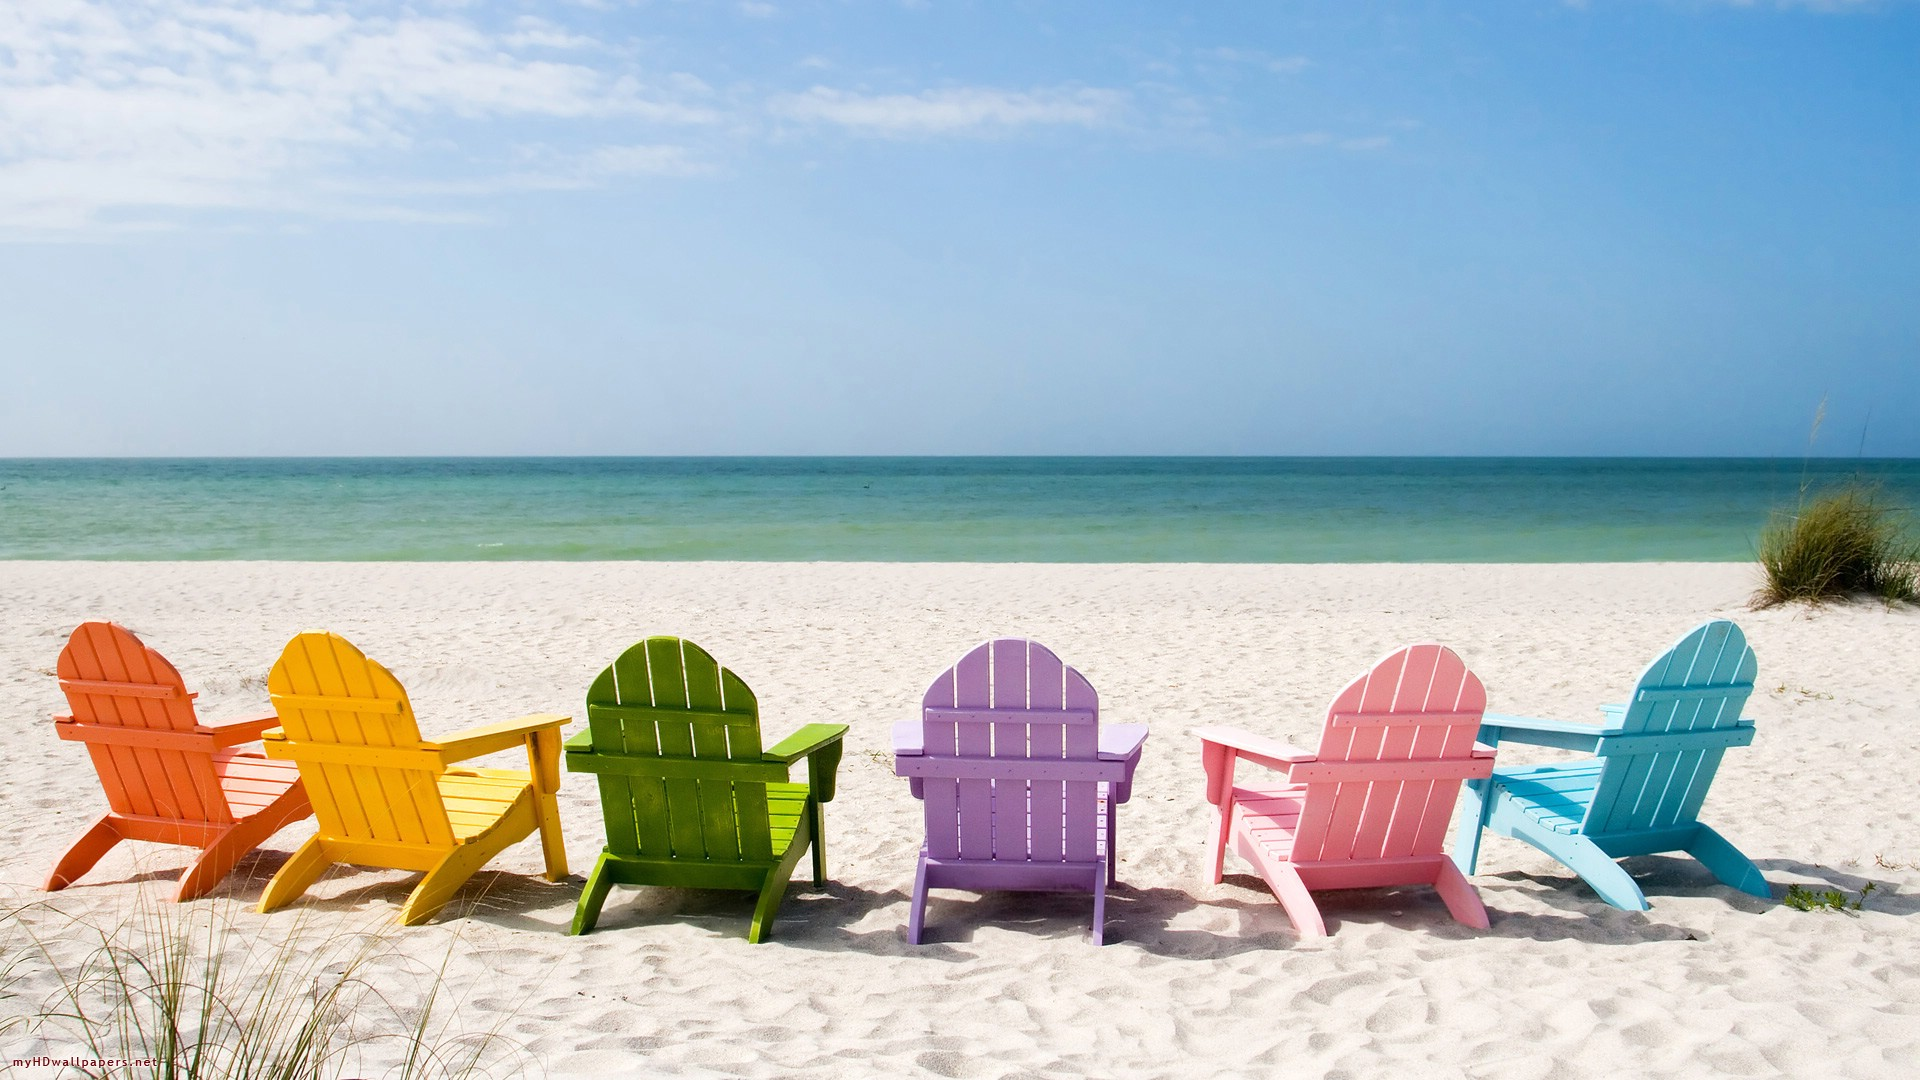 Summer in Beach 2015 3 10875 HD Images Wallpapers